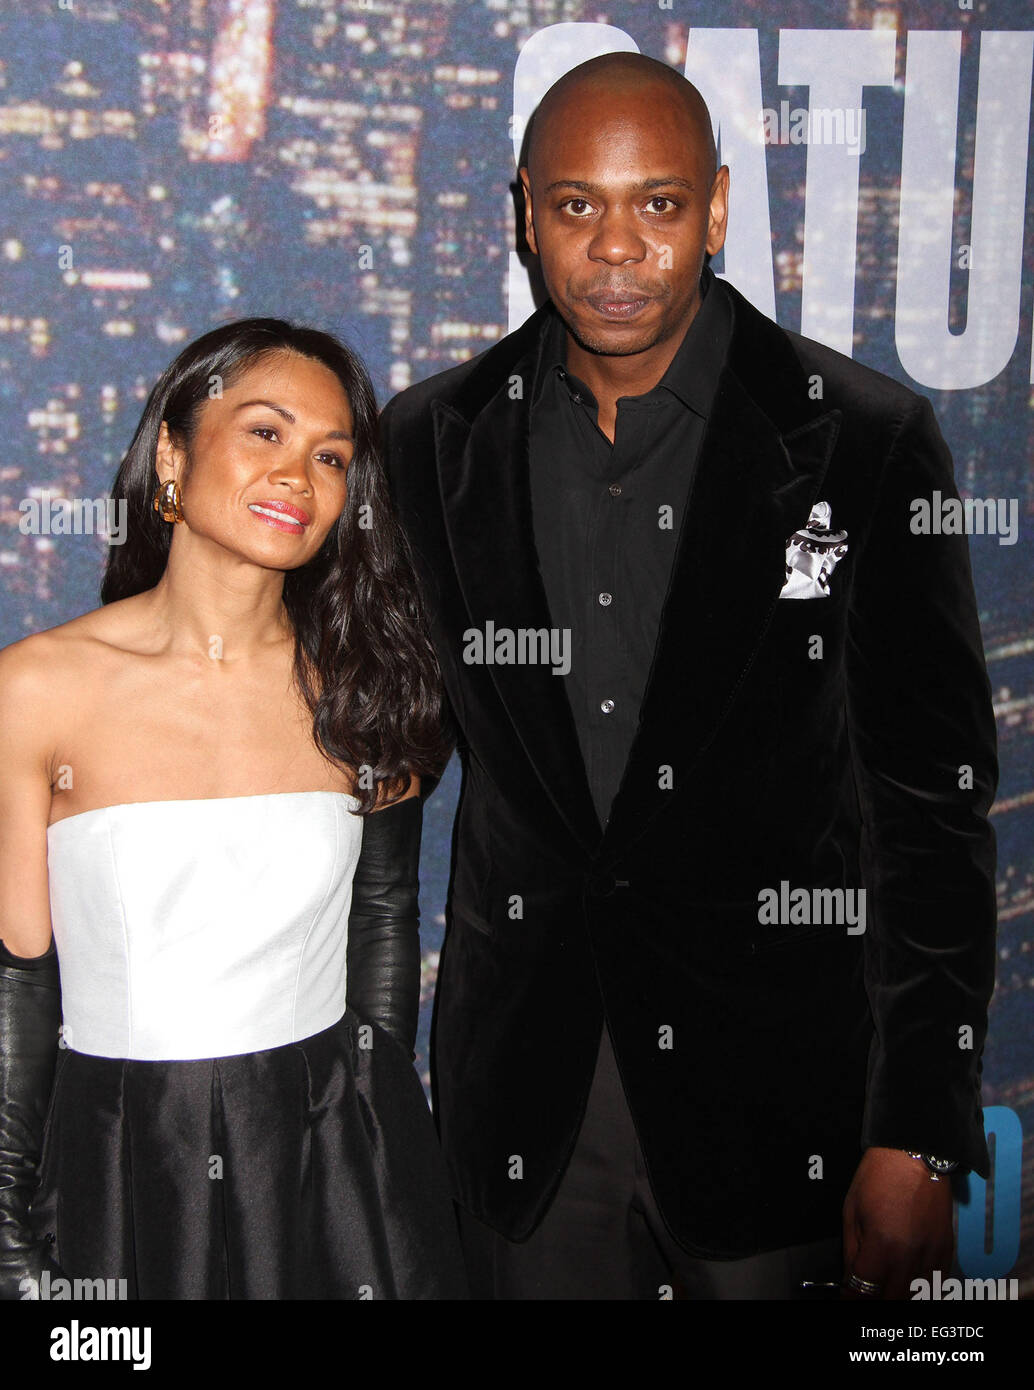 new york new york usa 15th feb 2015 actor dave chappelle and his stock photo alamy https www alamy com stock photo new york new york usa 15th feb 2015 actor dave chappelle and his wife 78761016 html